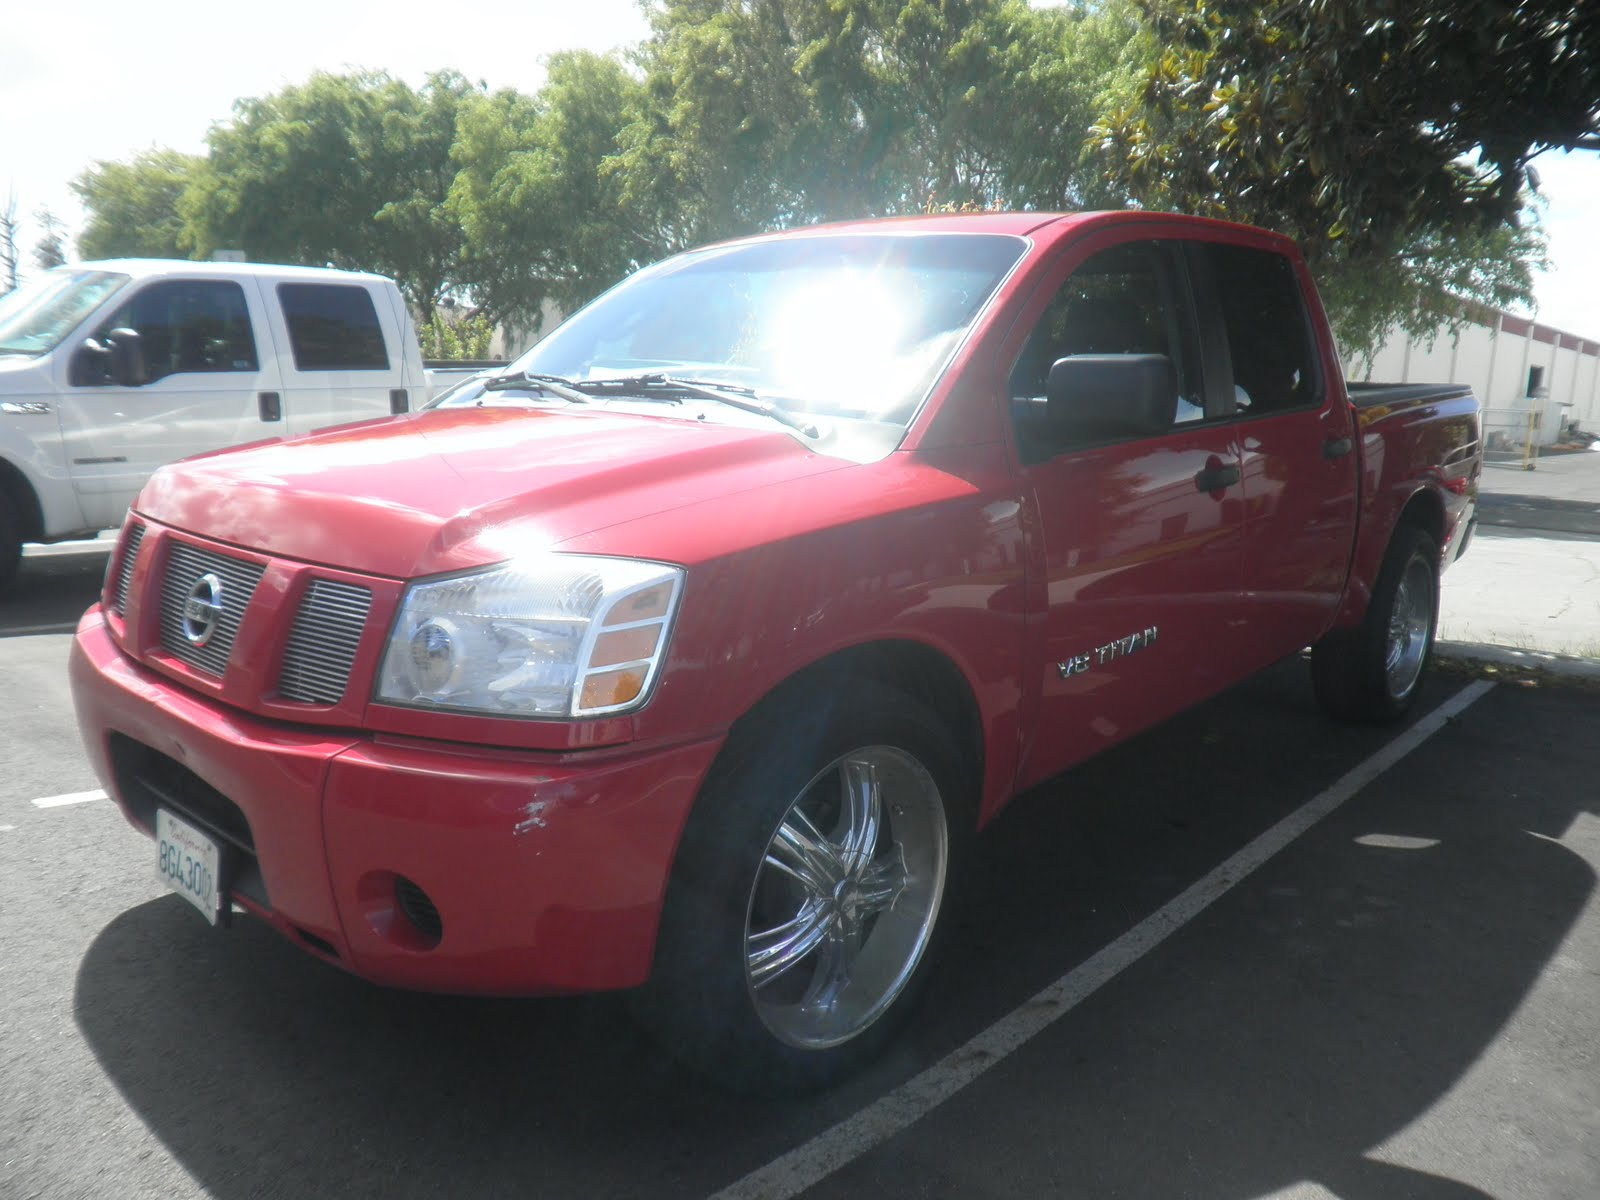 2007 Nissan Titan With Big Dent Repaired